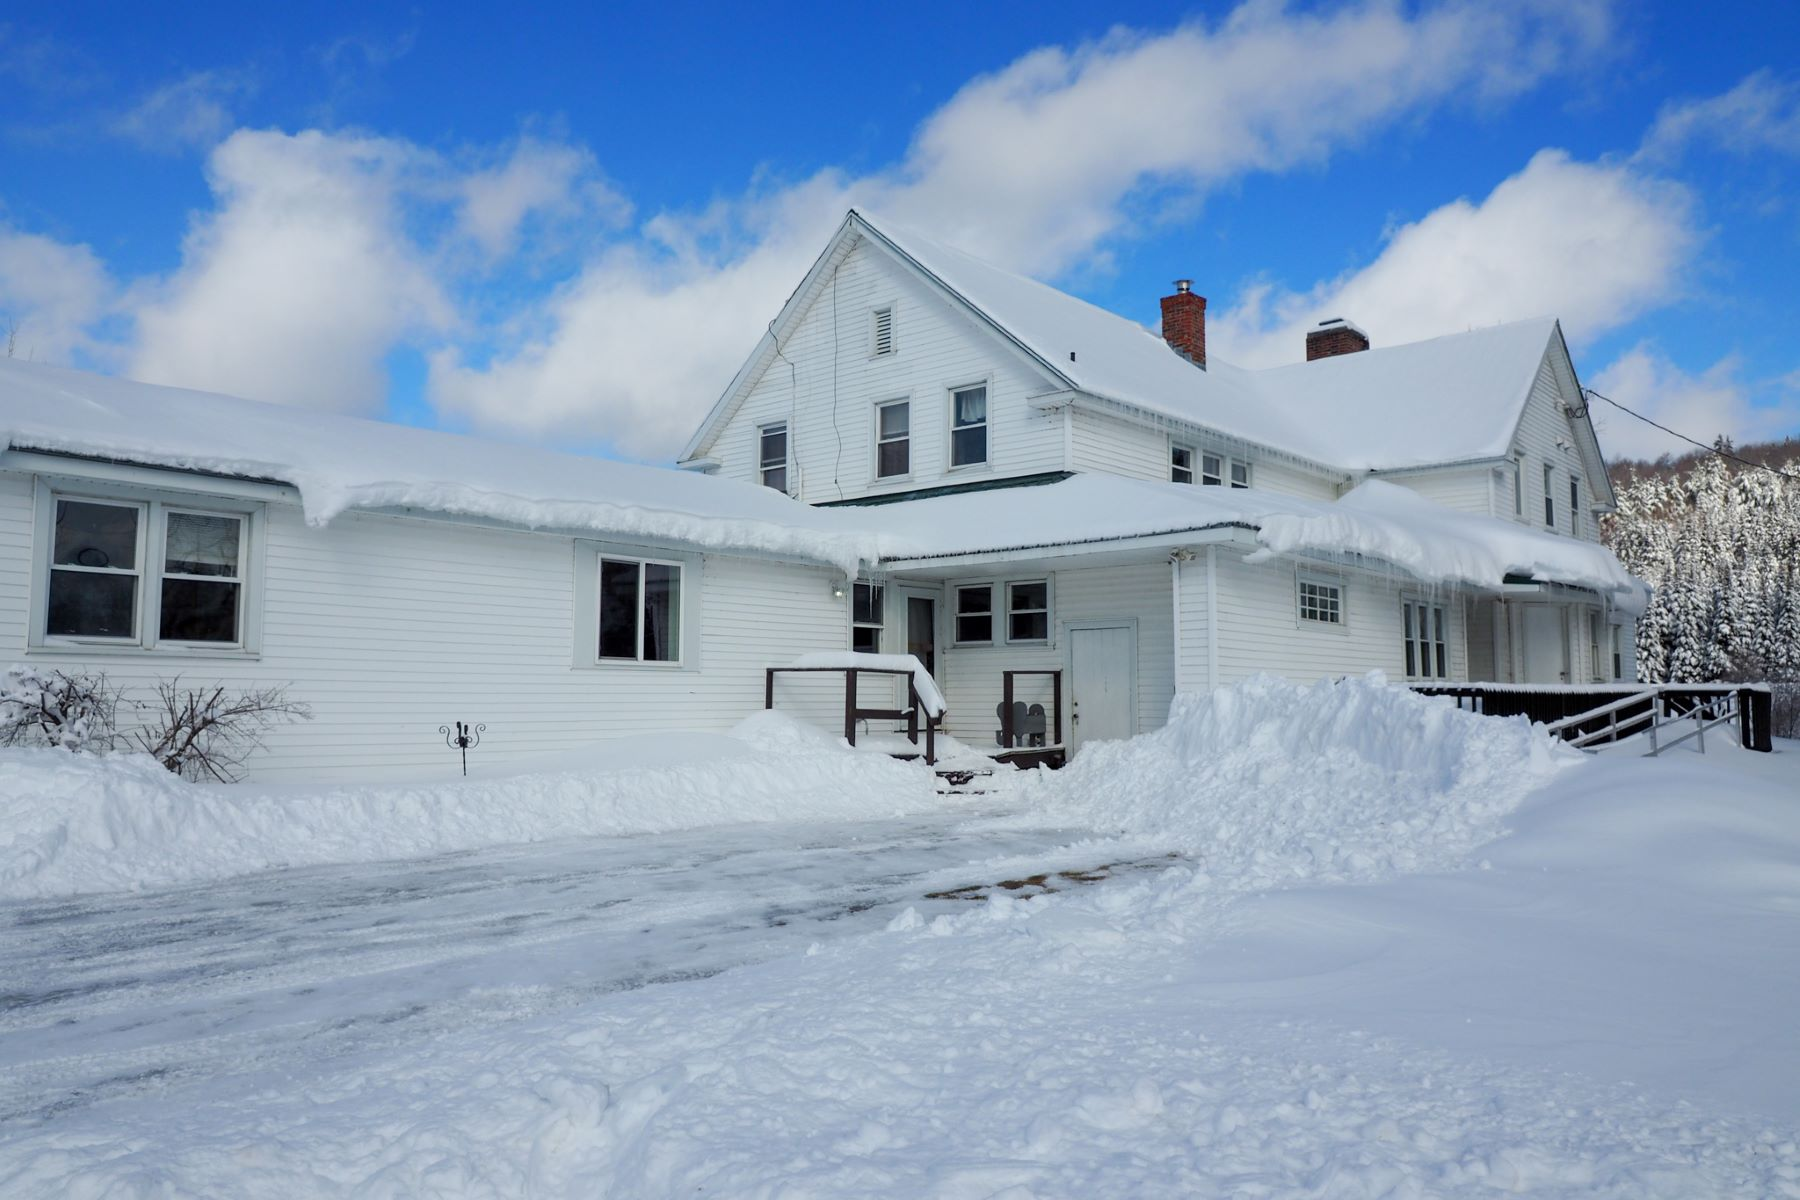 Single Family Homes for Sale at 4511 South Wheelock Road Wheelock, Vermont 05851 United States